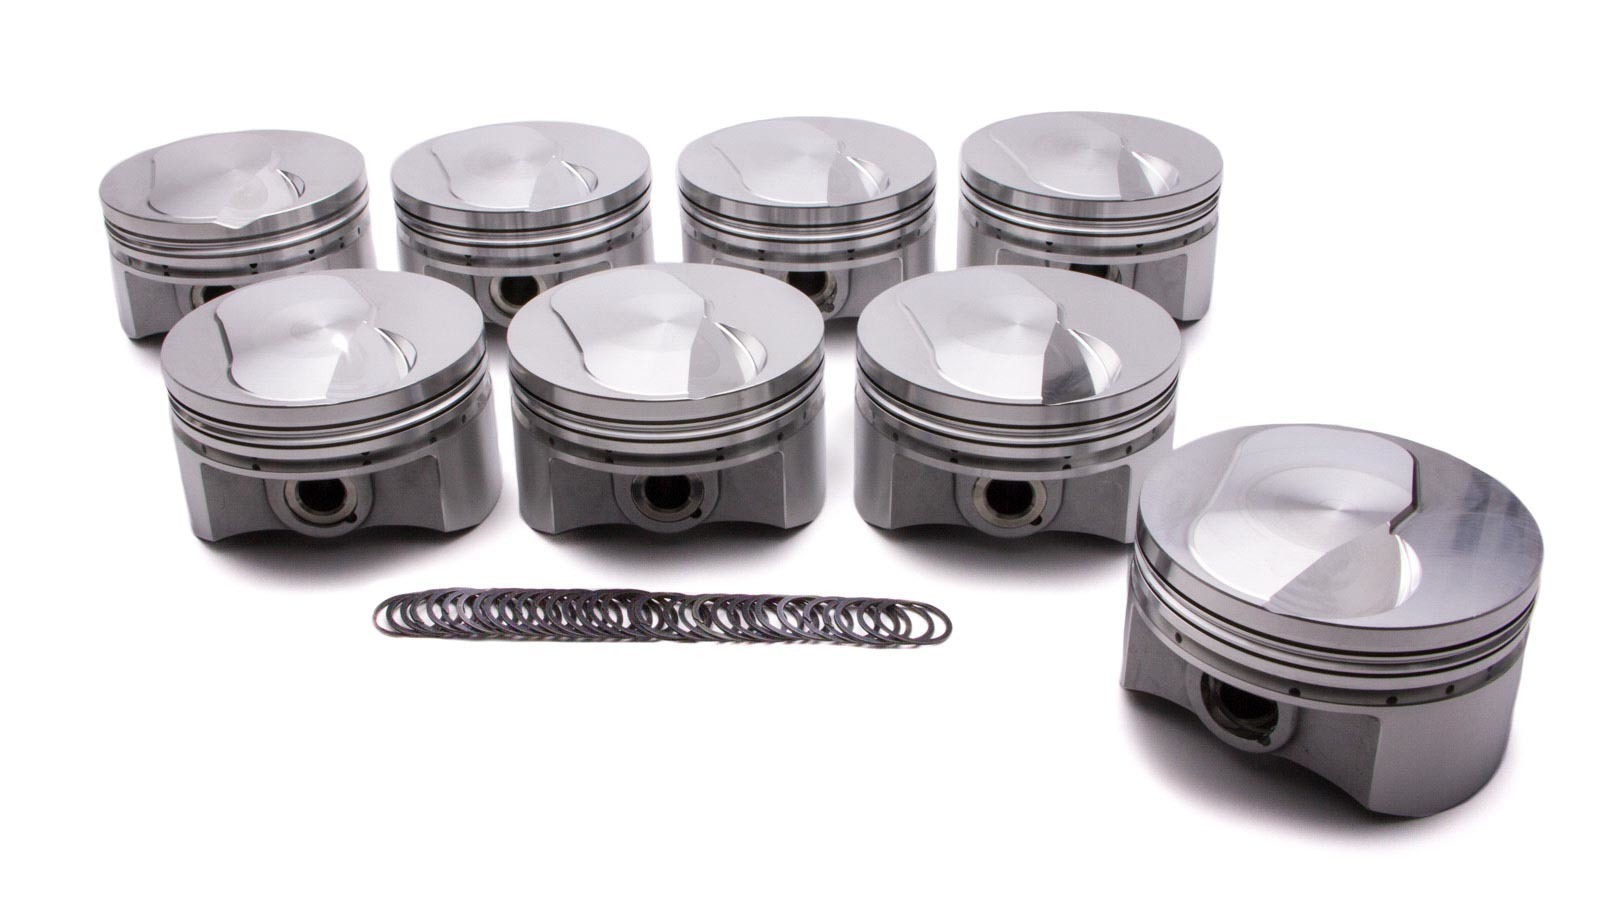 Diamond Racing Products 12713-8 Piston, Nitrous Dome, Forged, 4.600 in Bore, 0.043 x 1/16 x 3/16 in Ring Grooves, Plus 46.0 cc, Big Block Chevy, Set of 8